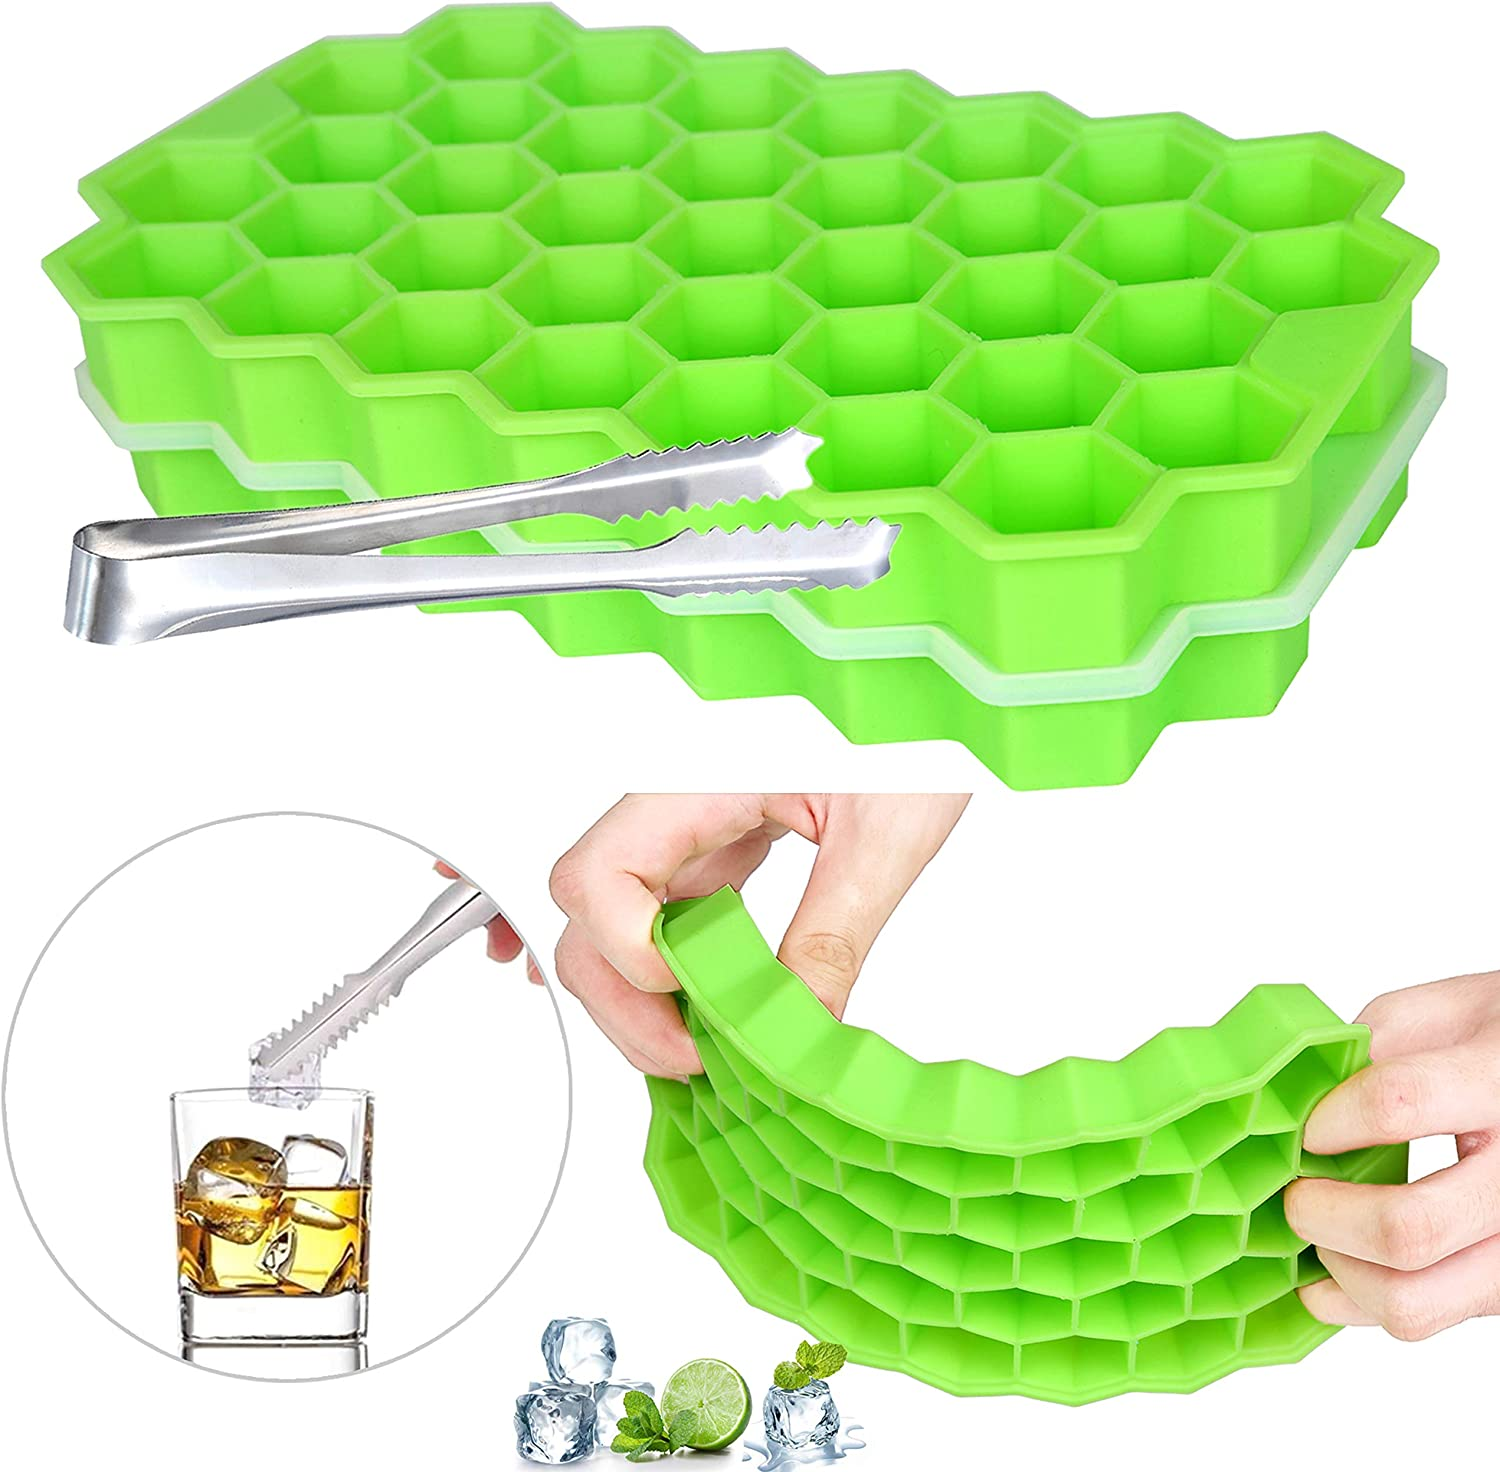 Ice Cube Trays with Lid BPA Free 2 pcs of 74 Ice Cubes Flexible Stackable Easy Release Ice Cube Trays Silicone, Suitable for Whiskey, Cocktails, Cold Drinks, etc. + Ice Clip (green)